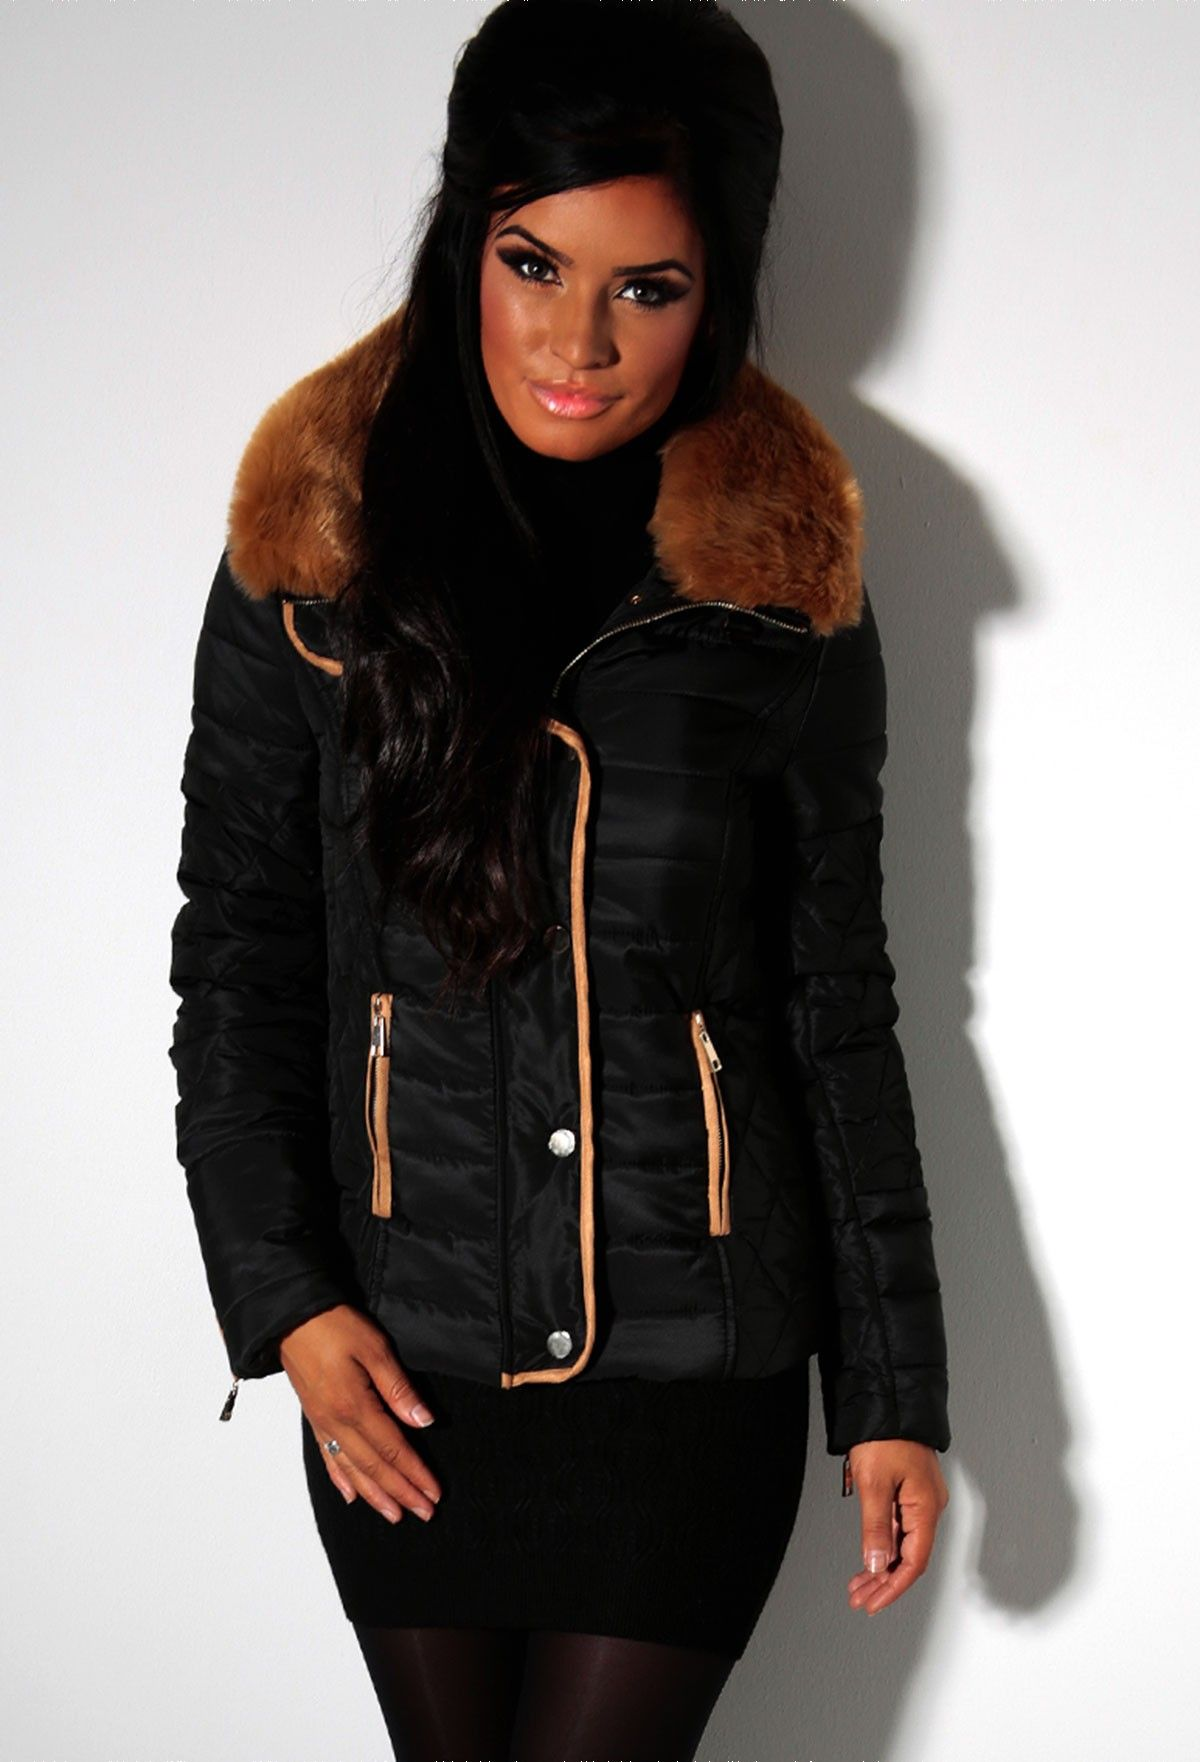 Mercedes Black Quilted Faux Fur Collar Jacket | Zip-up | Pinterest ...